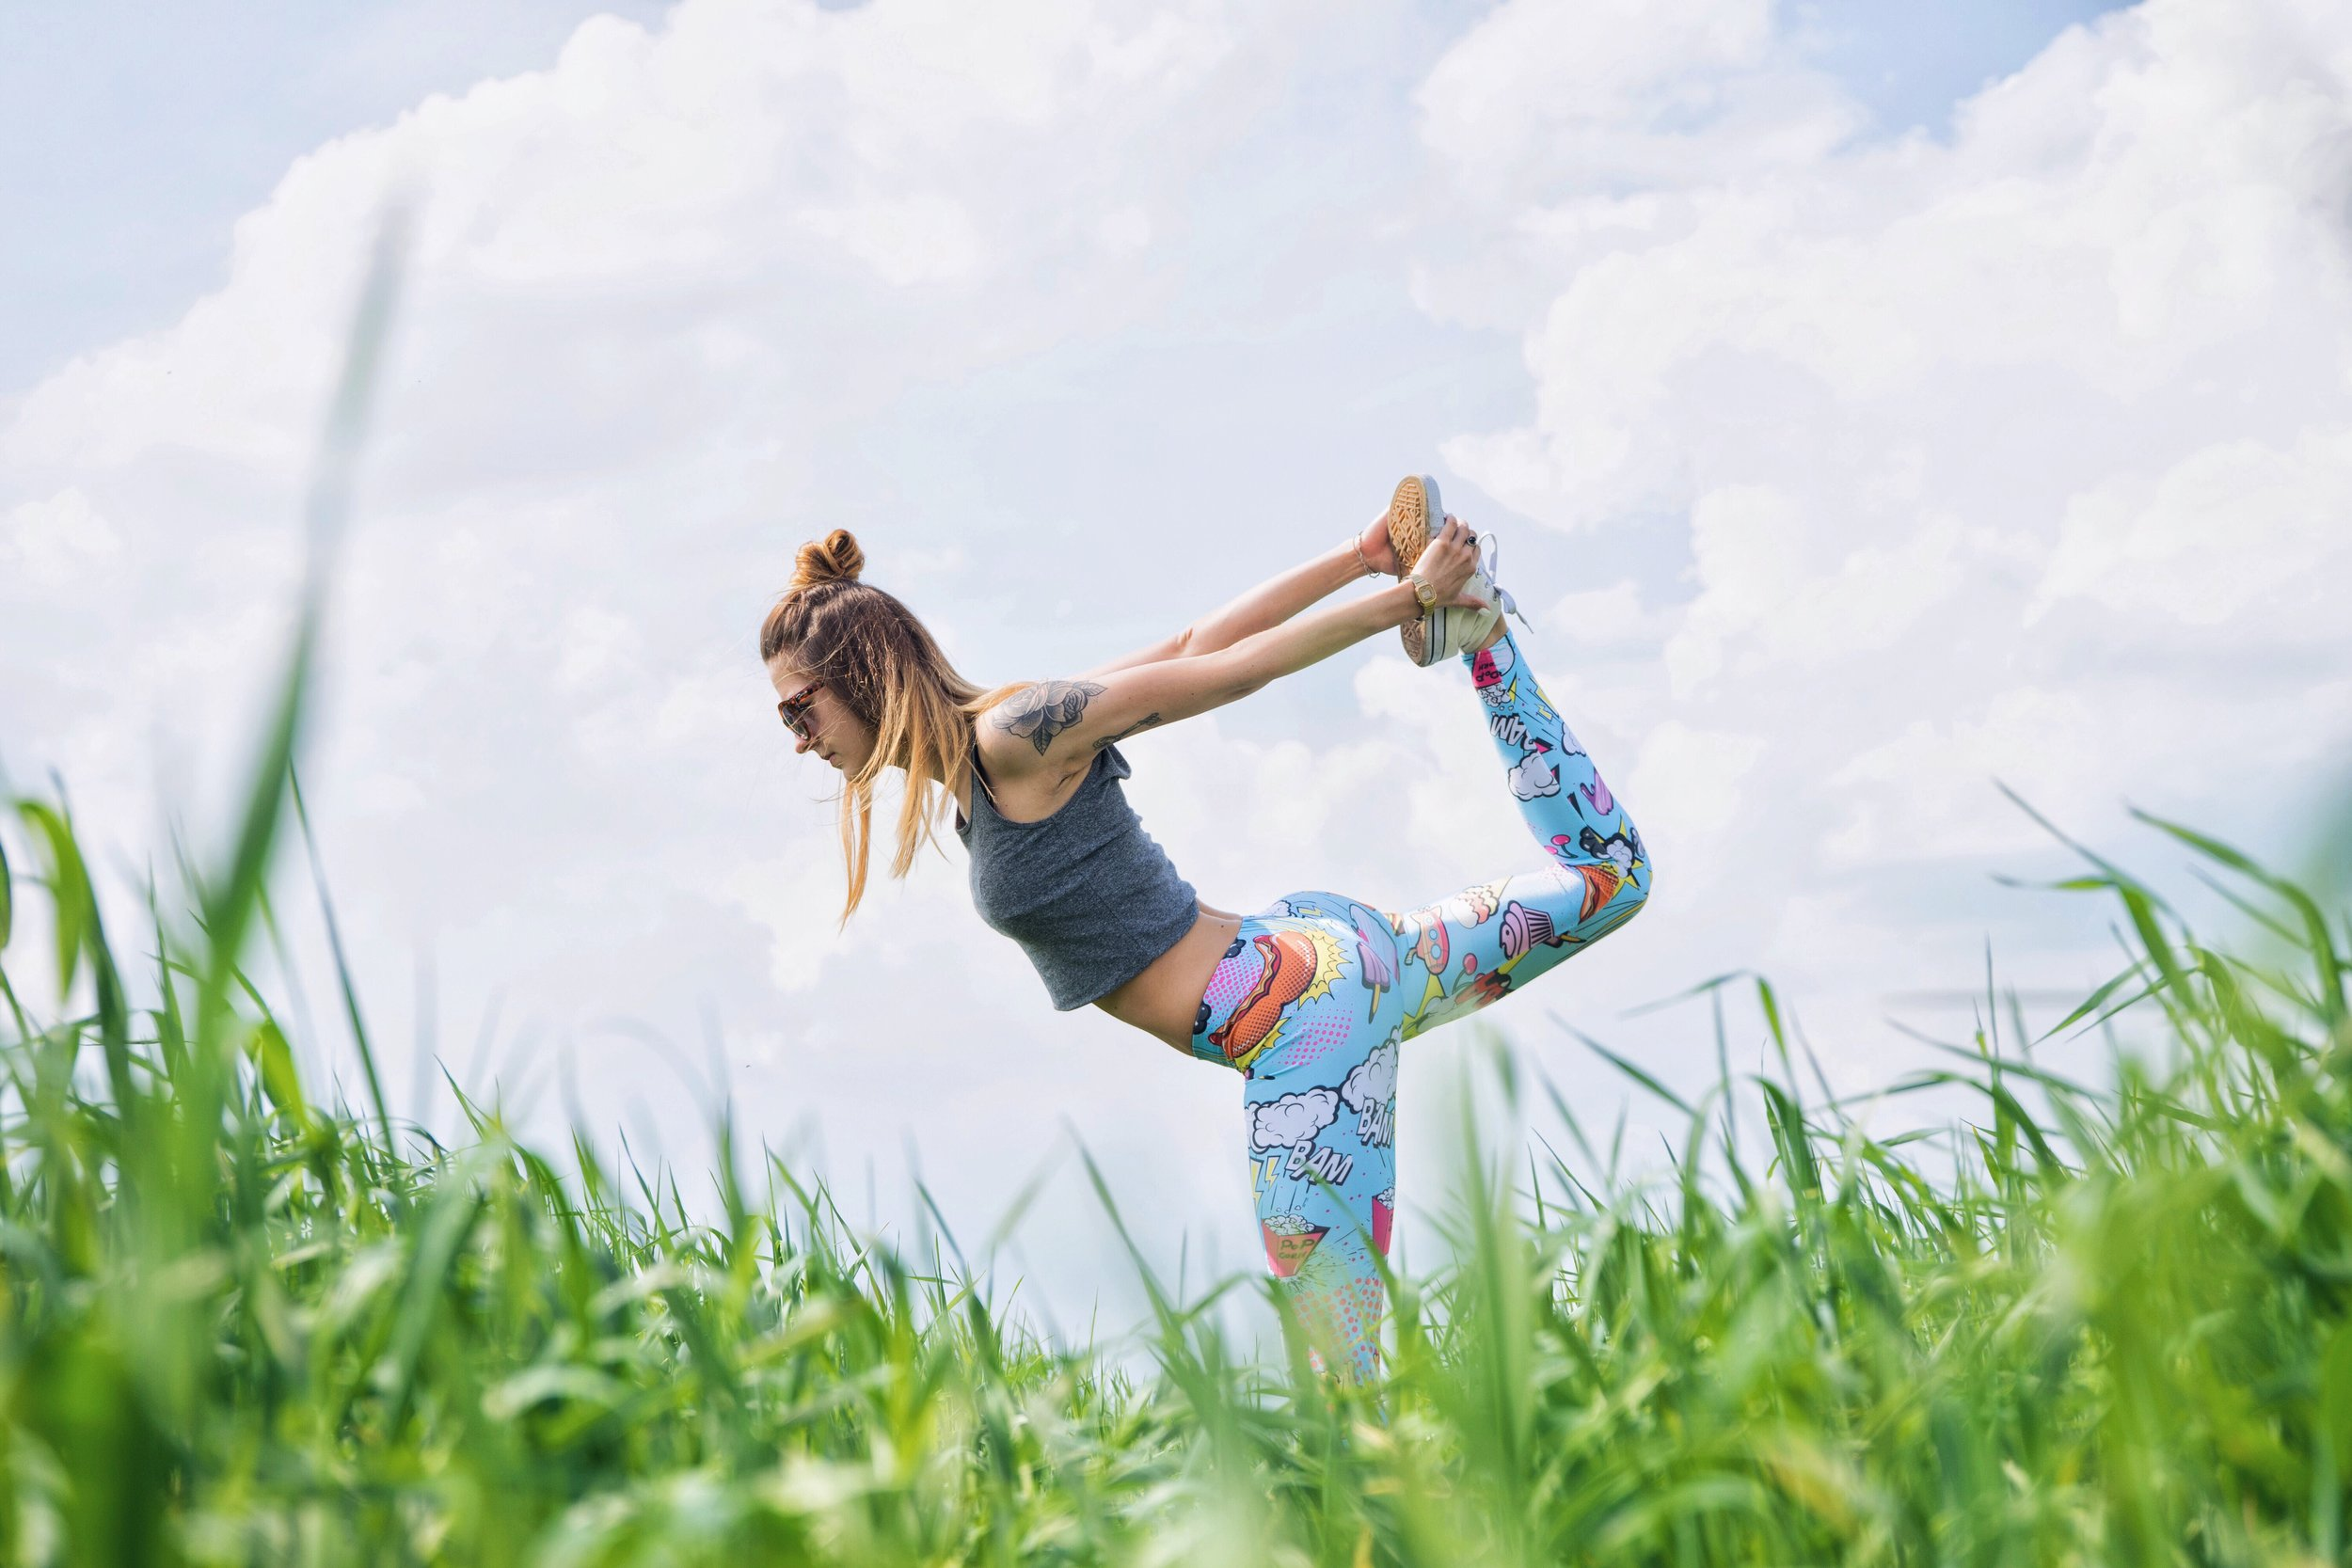 Yoga, flexibility, and stress relief while outside